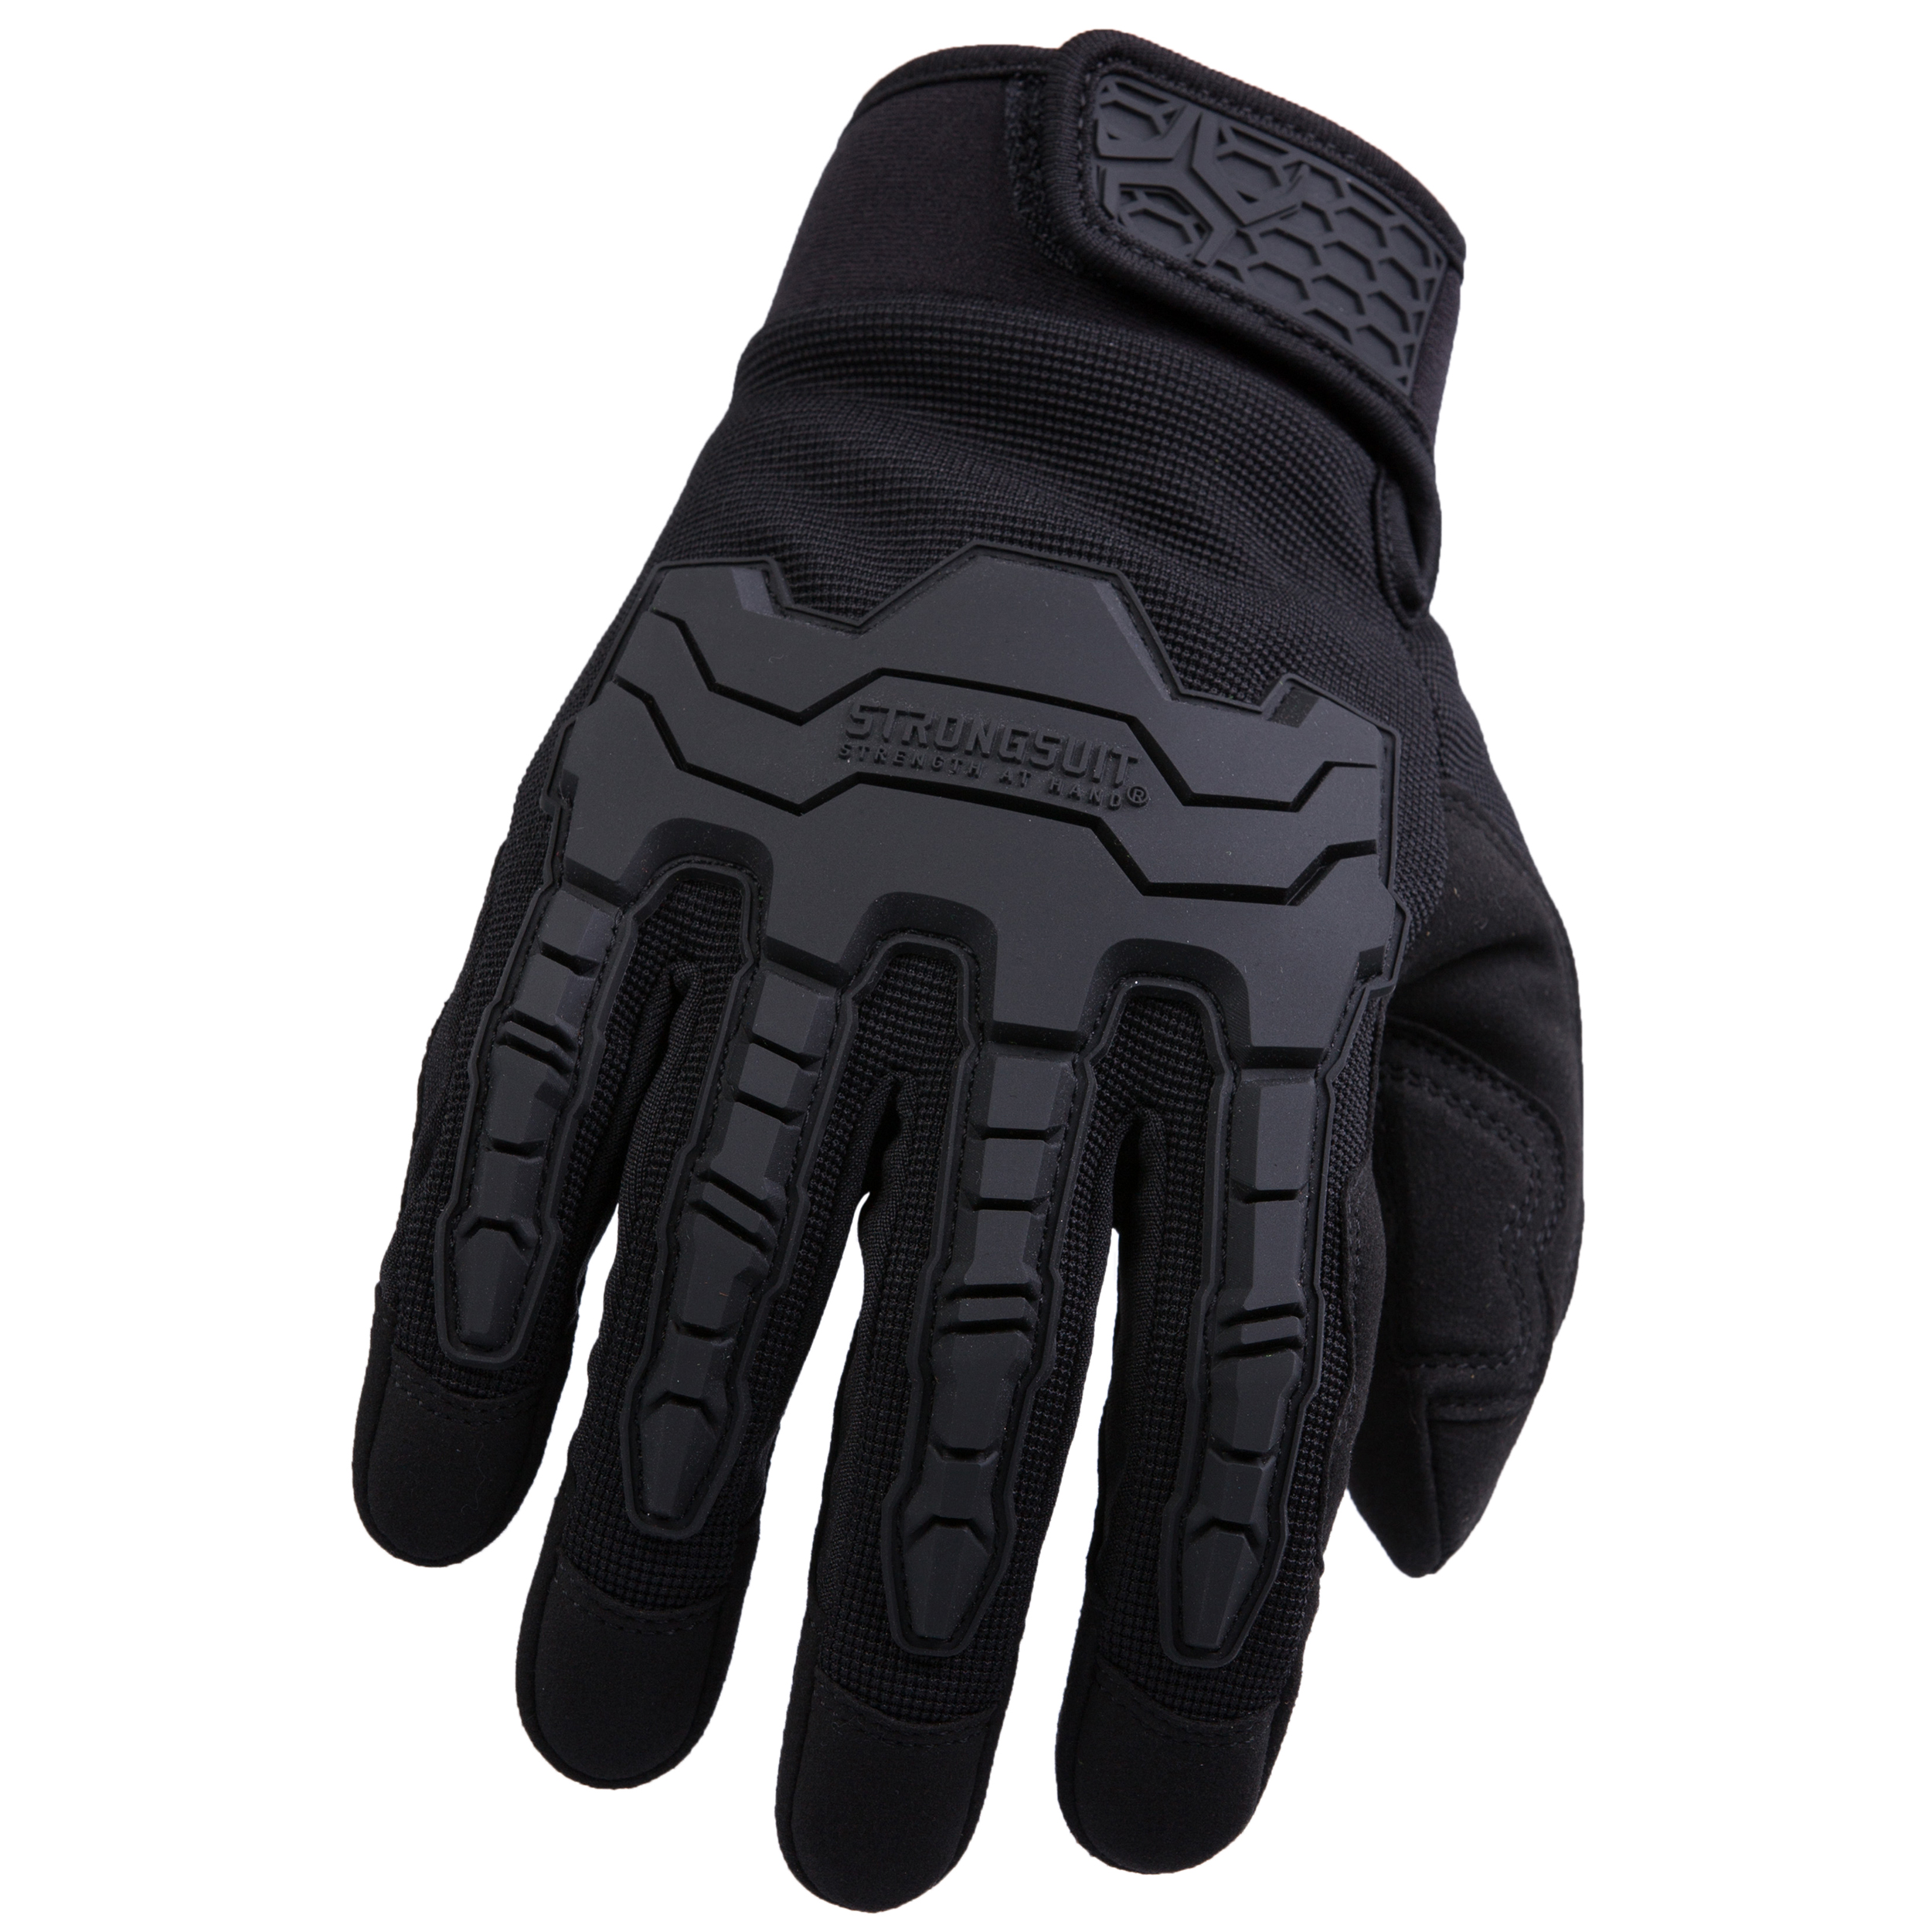 Brawny Plus Gloves, Black, Large